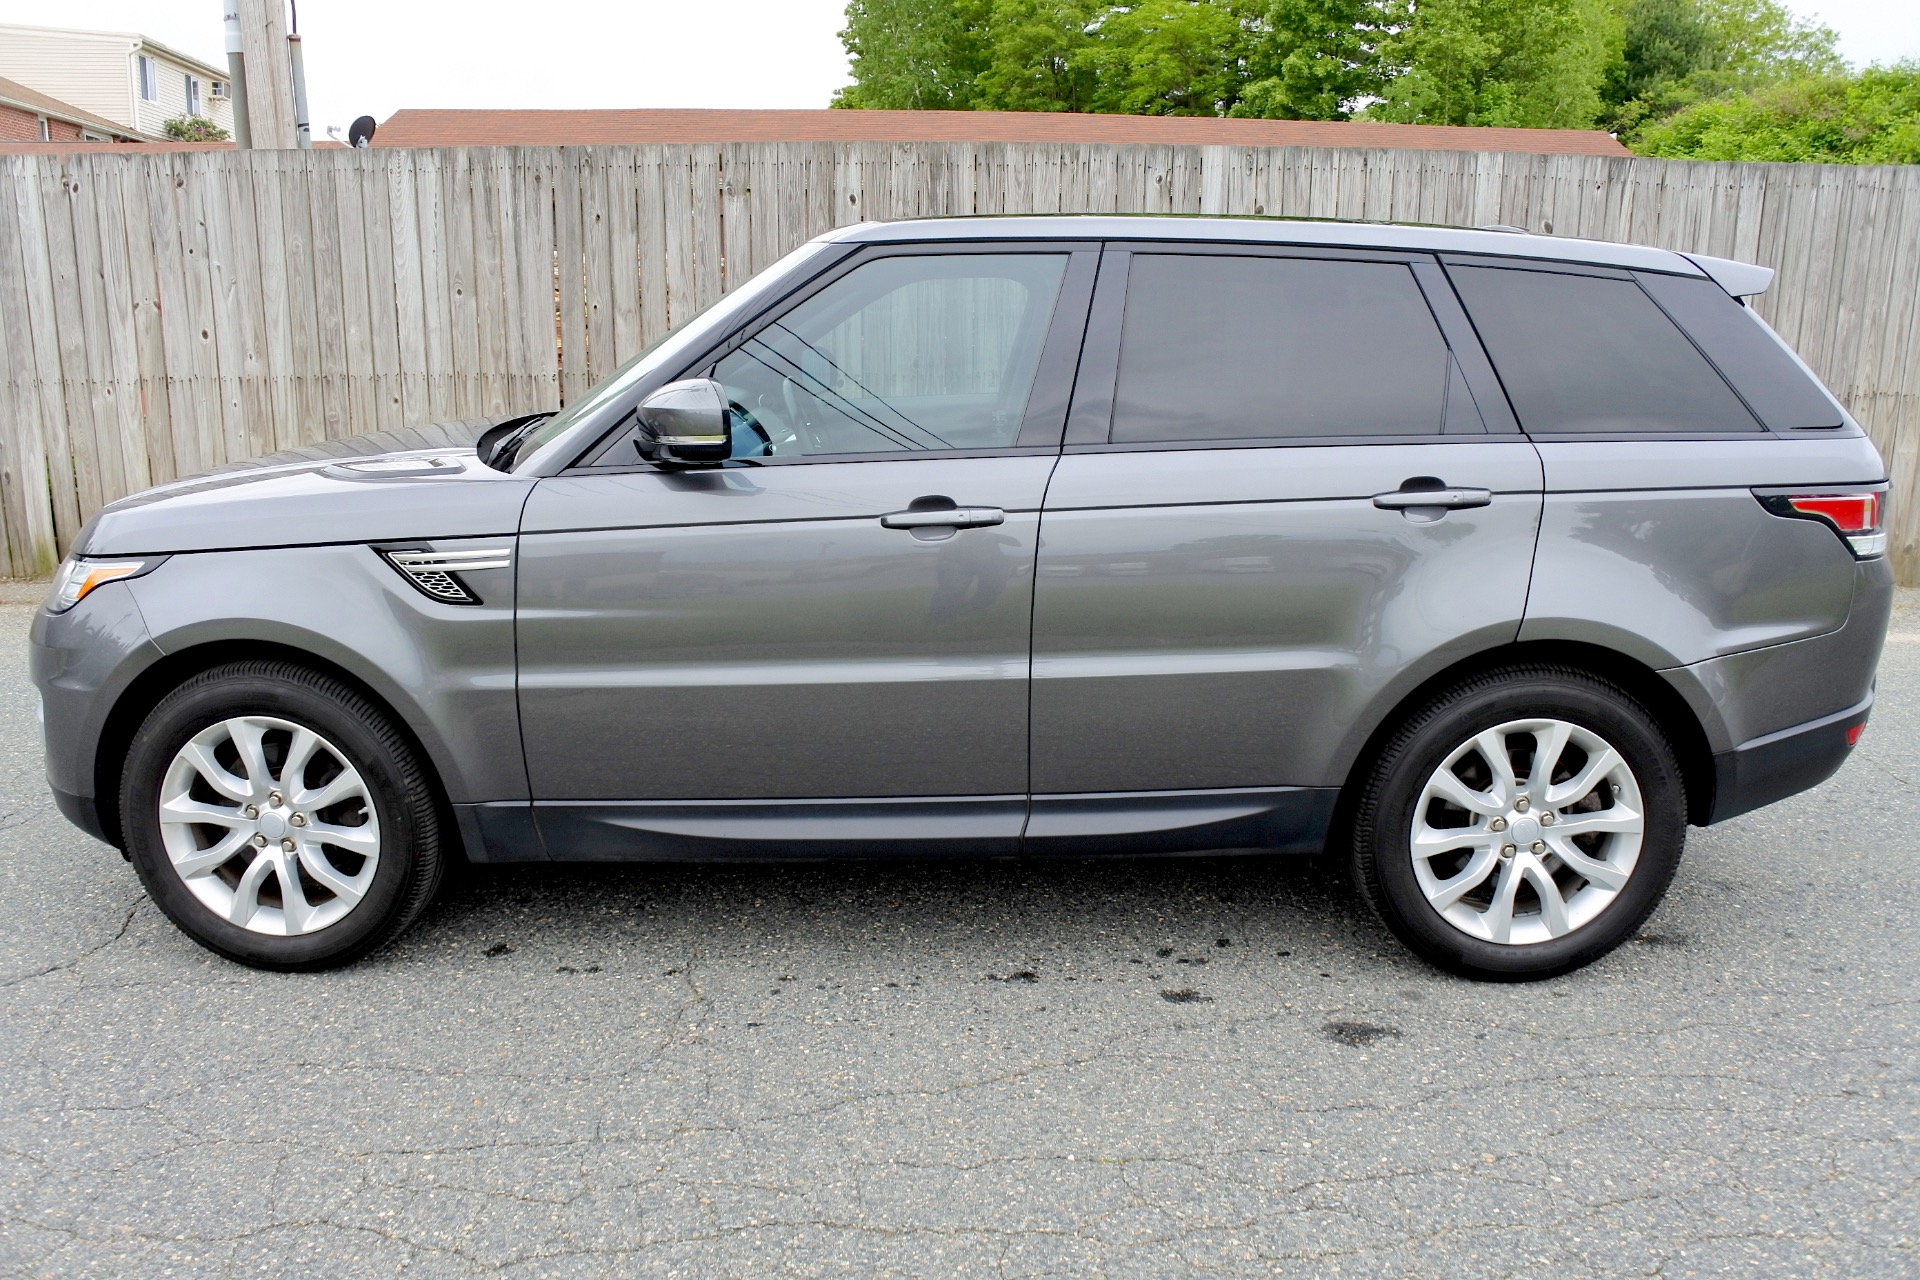 Used 2015 Land Rover Range Rover Sport HSE Used 2015 Land Rover Range Rover Sport HSE for sale  at Metro West Motorcars LLC in Shrewsbury MA 2